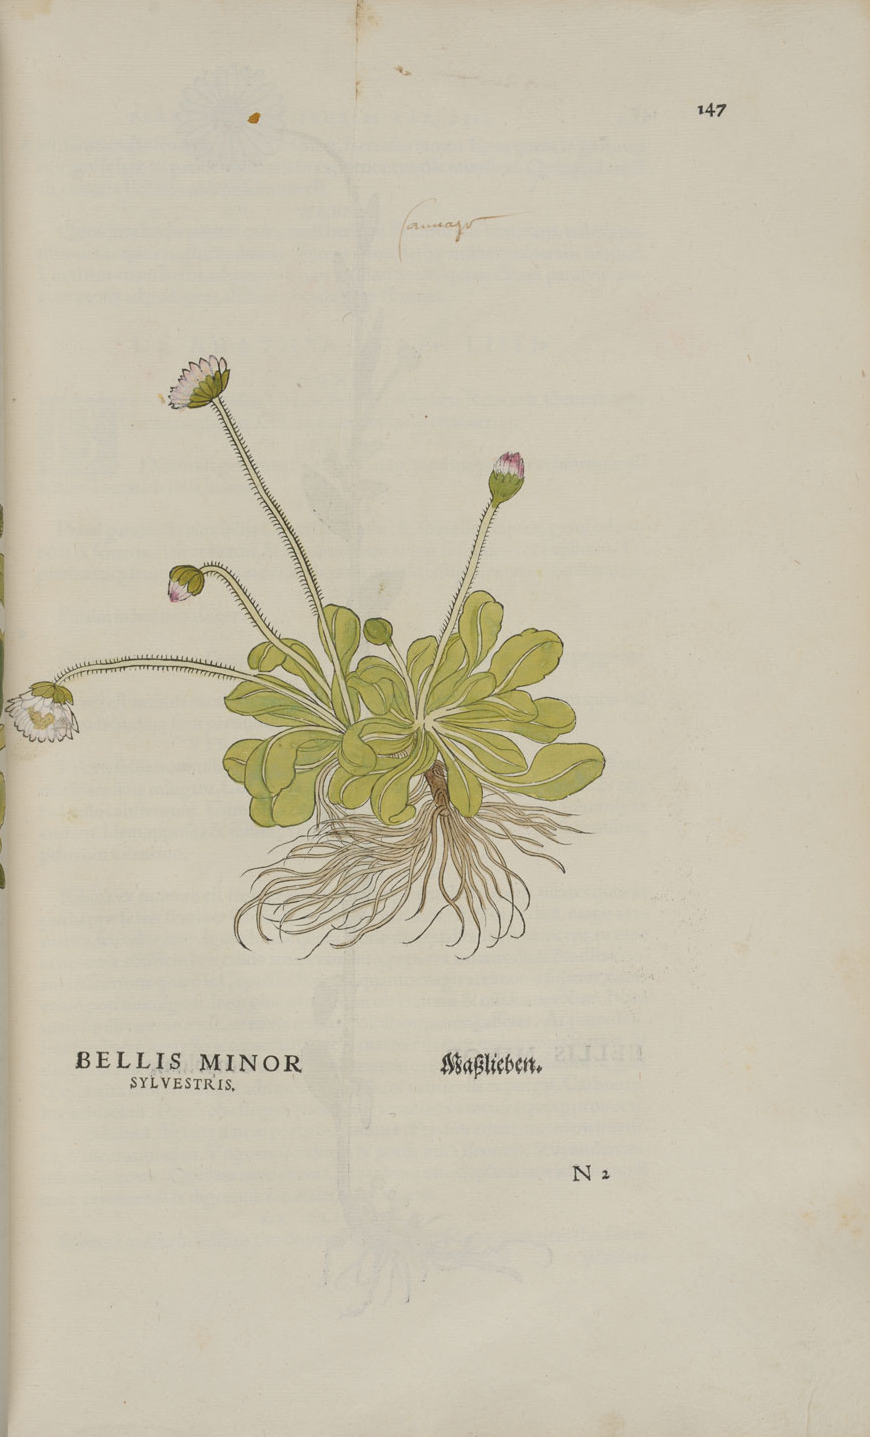 Bellis minor sylvestris © KBR - URL